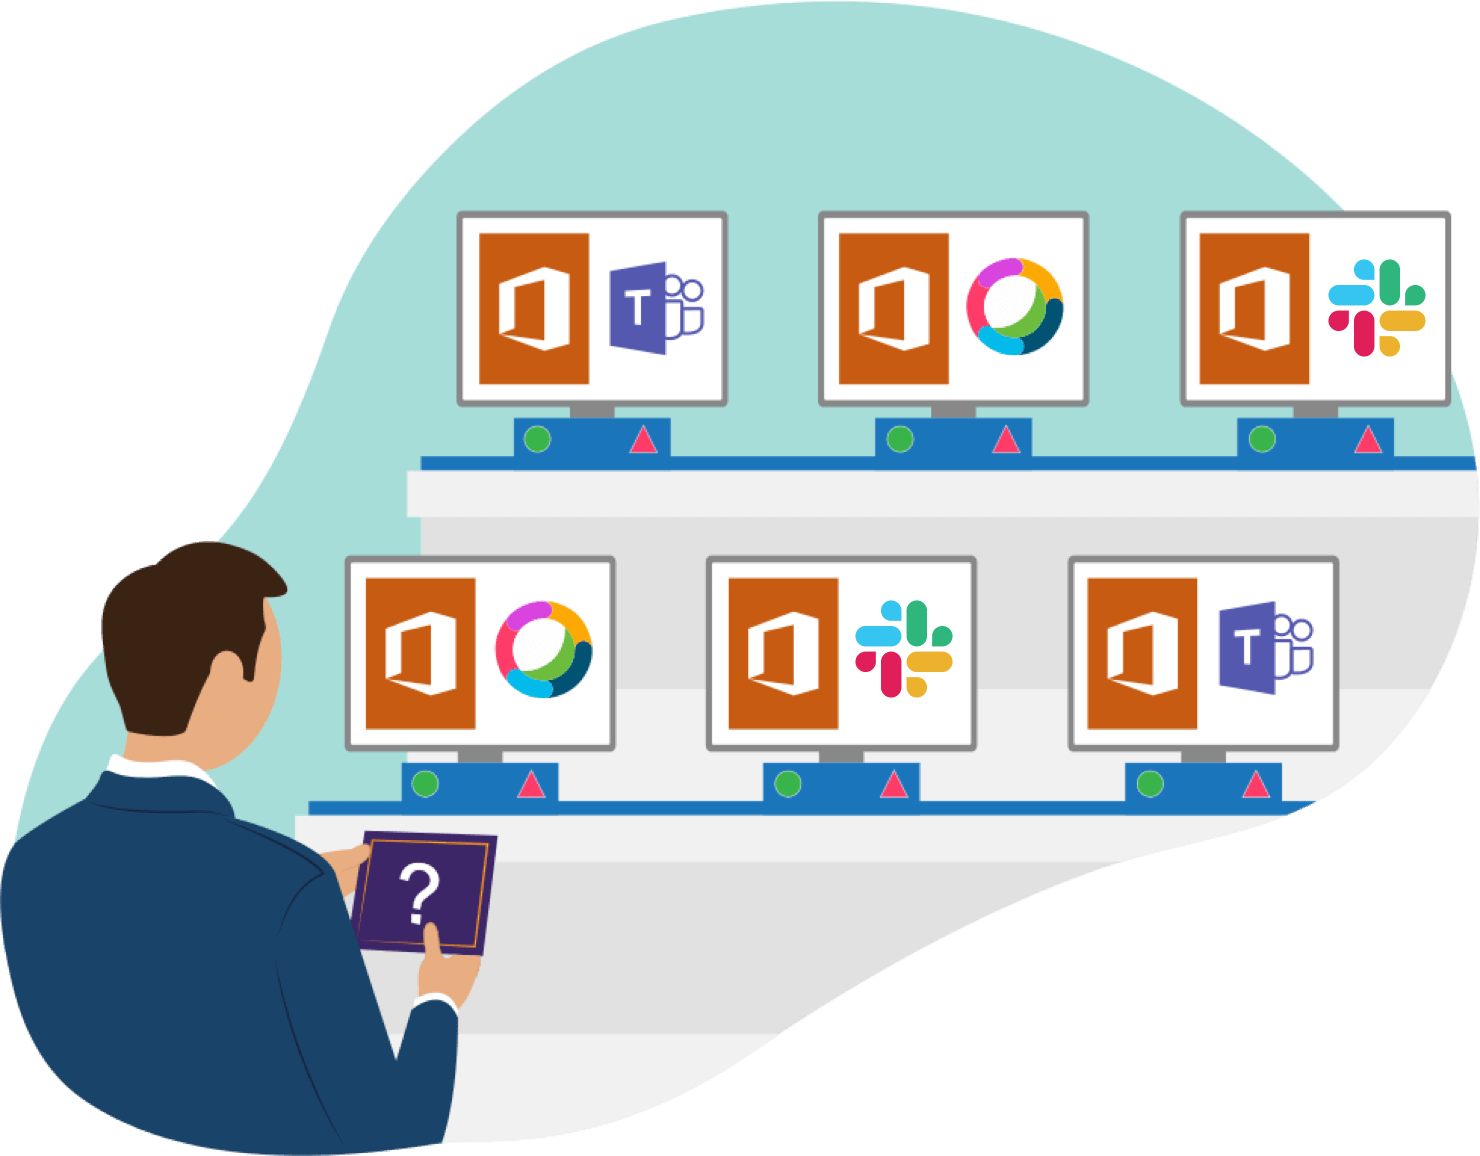 Microsoft Office 365 is used by 89% of businesses